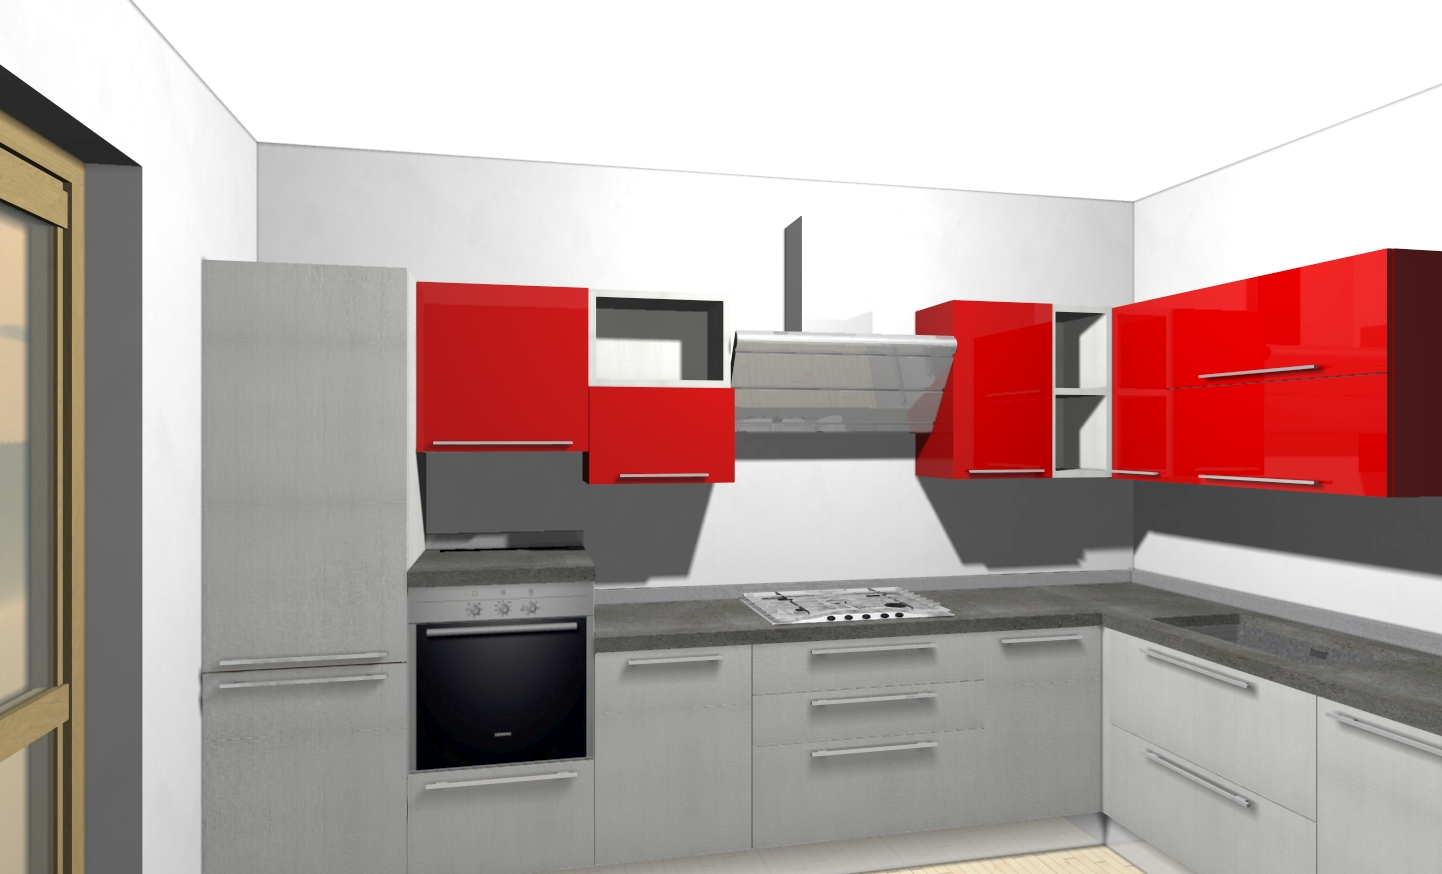 Awesome Cucina Rossa E Bianca Ideas - Amazing House Design ...